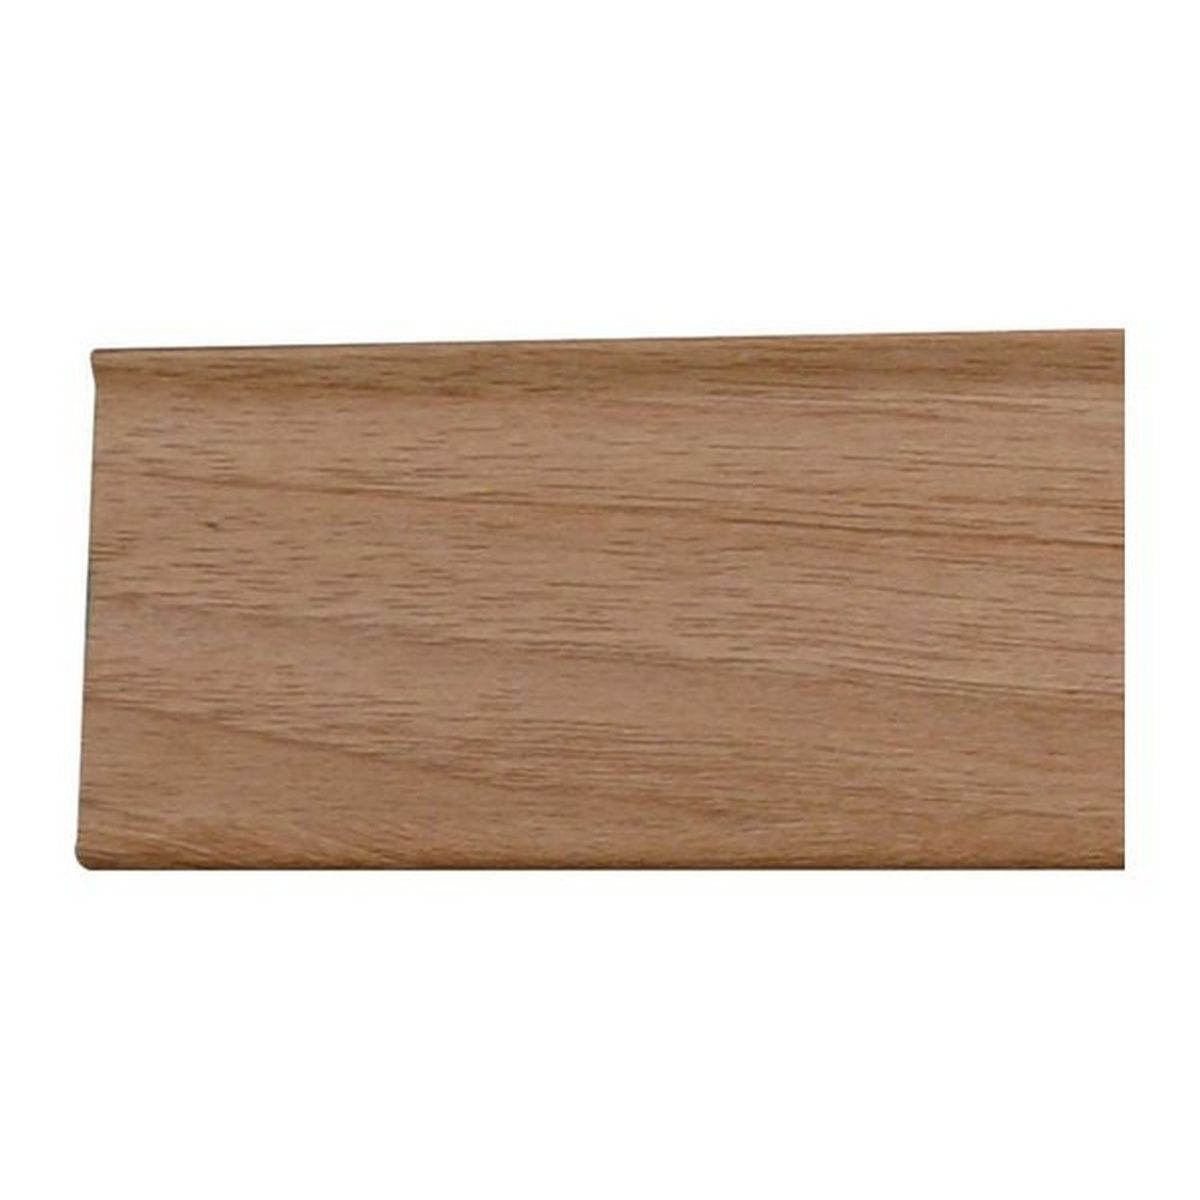 Self Adhesive PVC Skirting Walnut Finish, 2.5M, 48mm